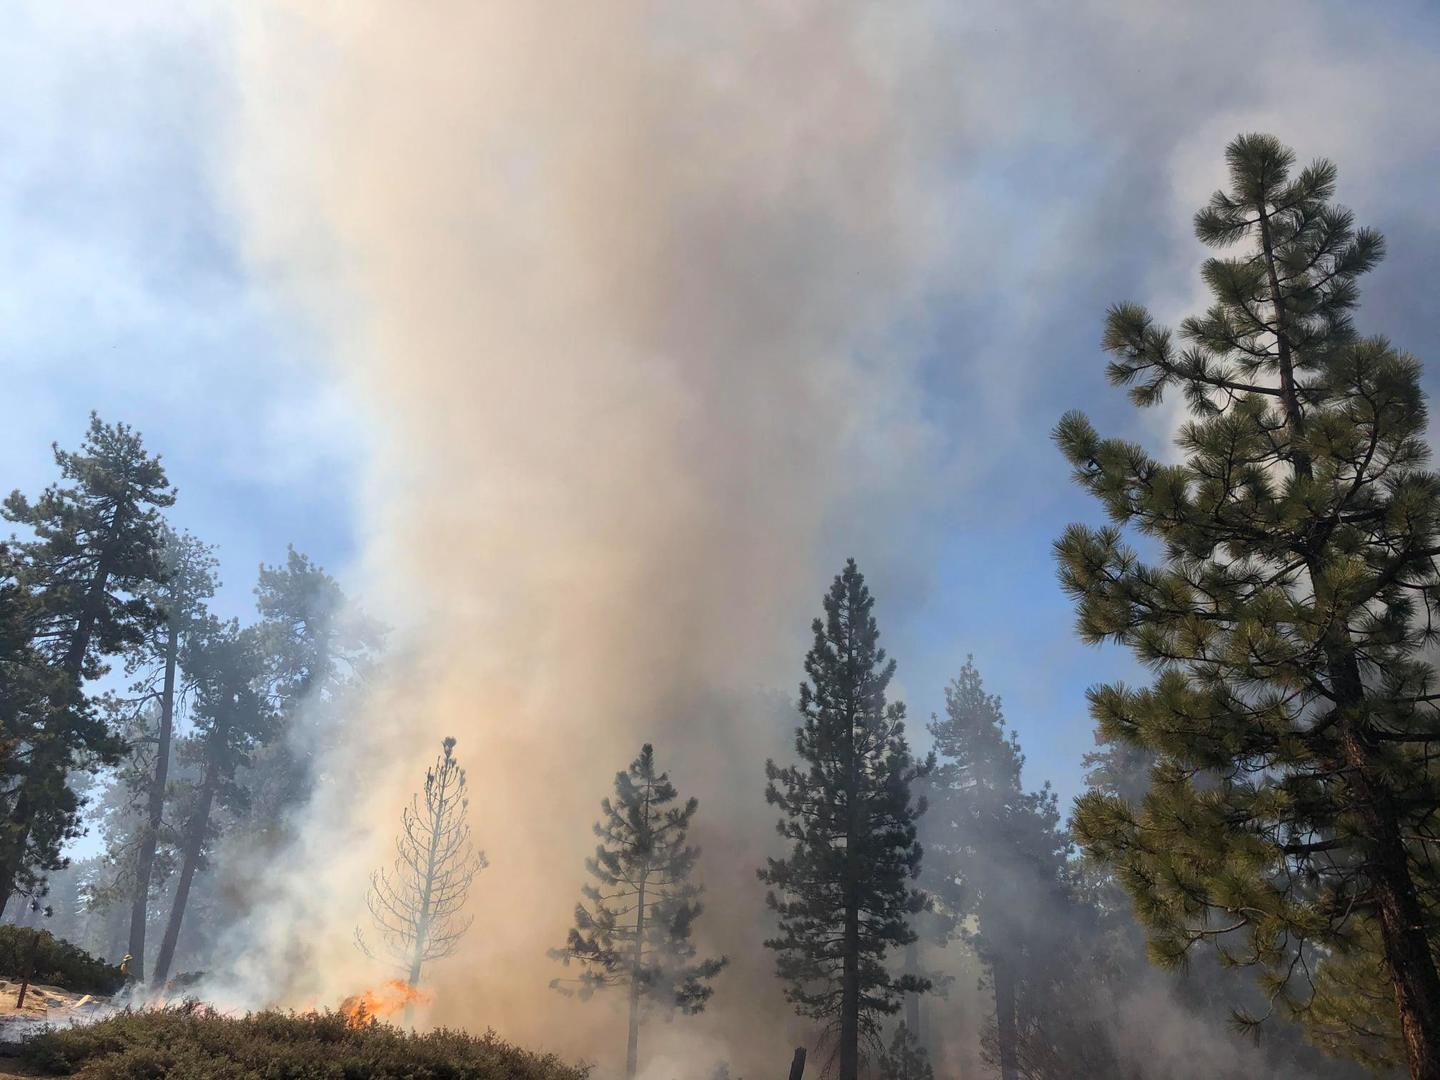 Landscape-wide prescribed fire could result in ten times as much smoke. (Source: USFS)